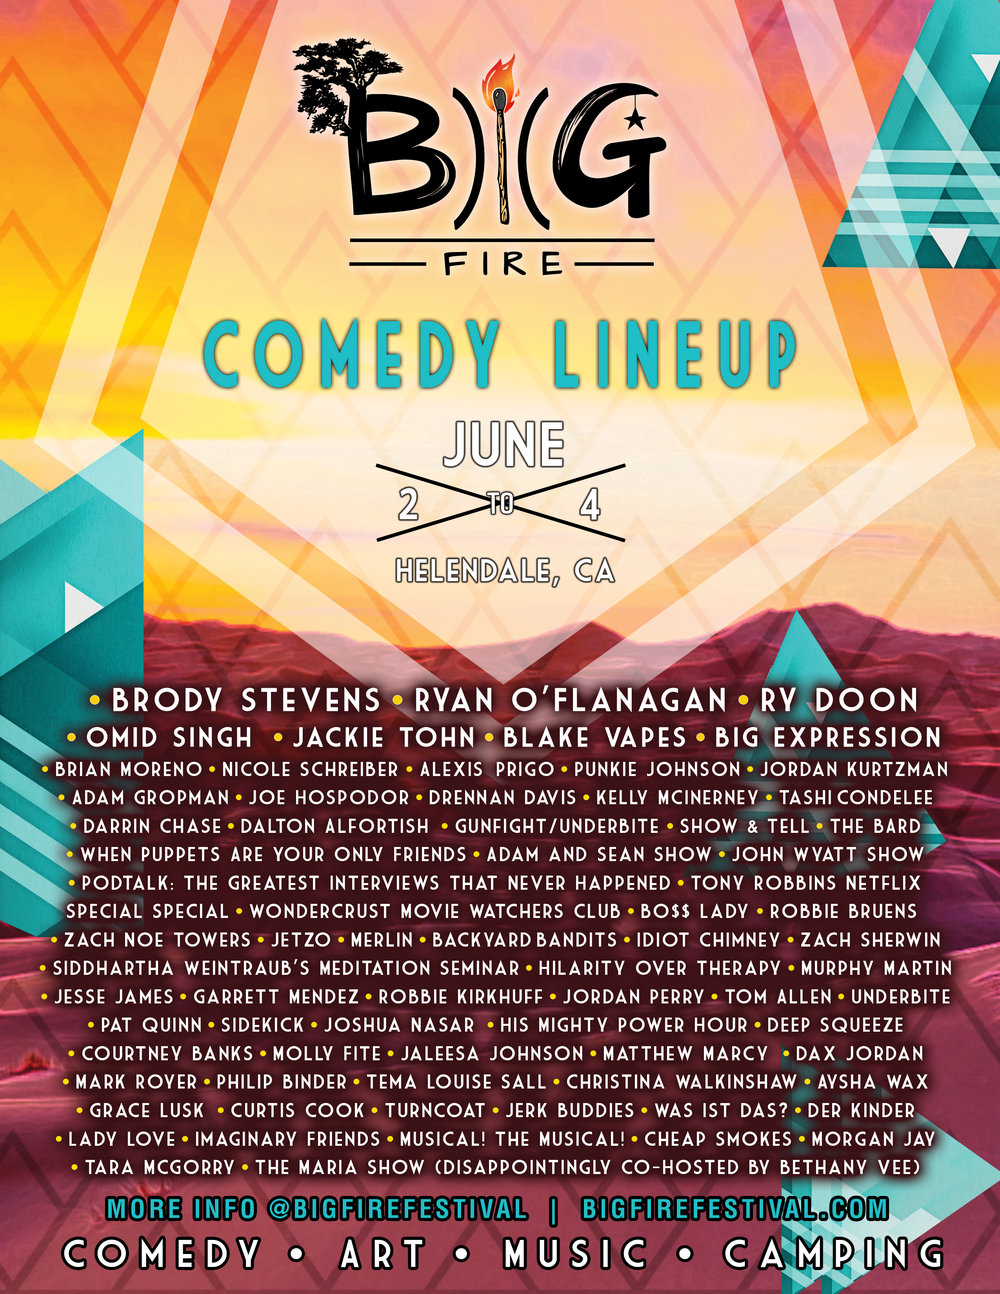 big fire comedy lineup